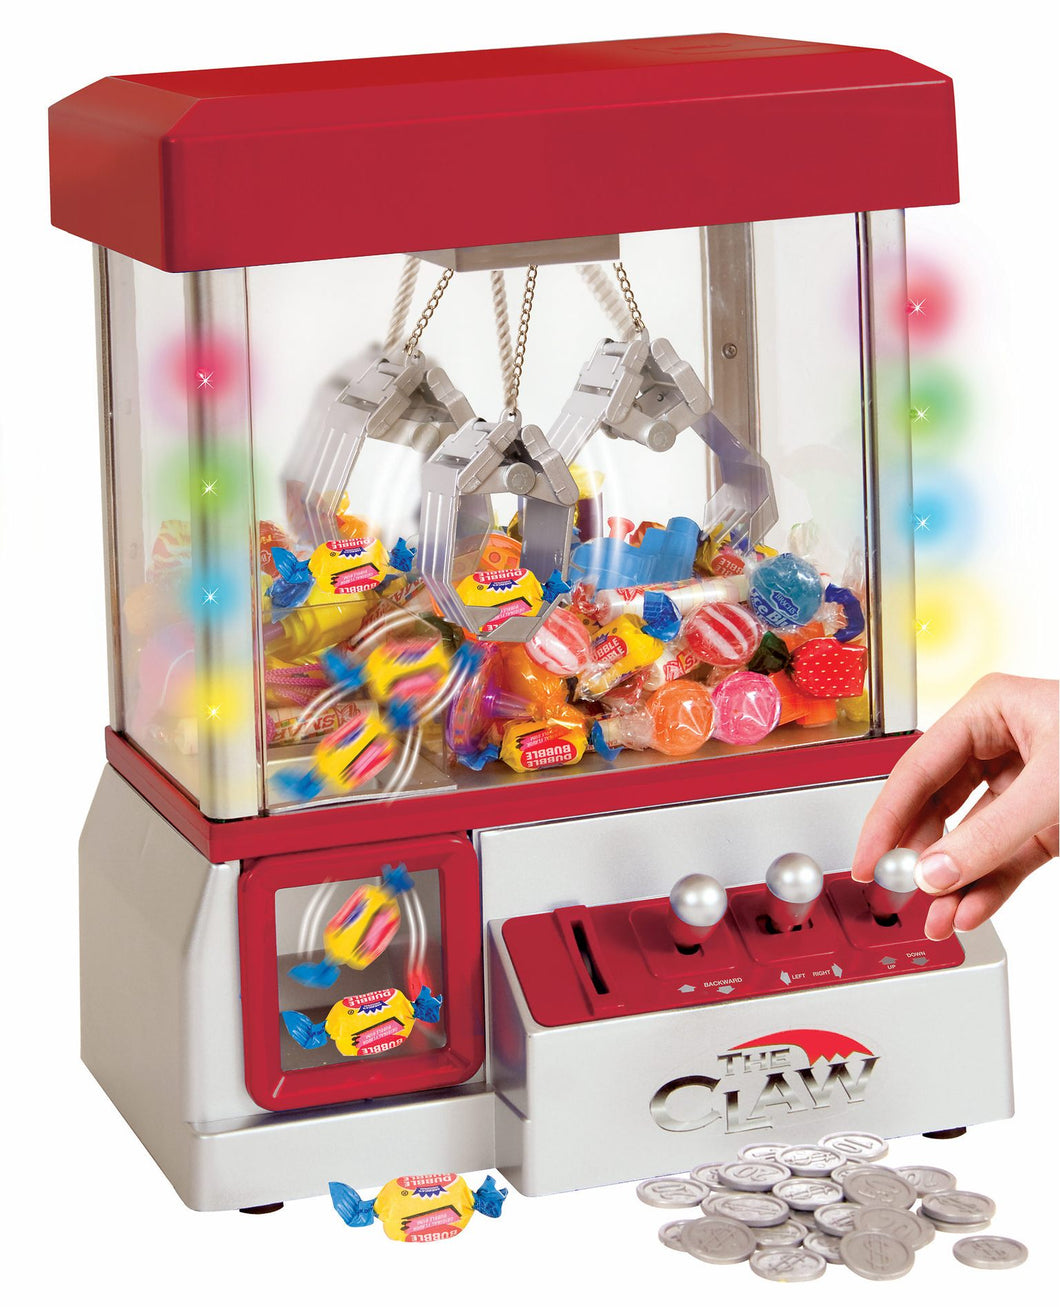 Carnival Crane Claw Game - Electronic Claw Toy Grabber Machine with LED Lights and Toys